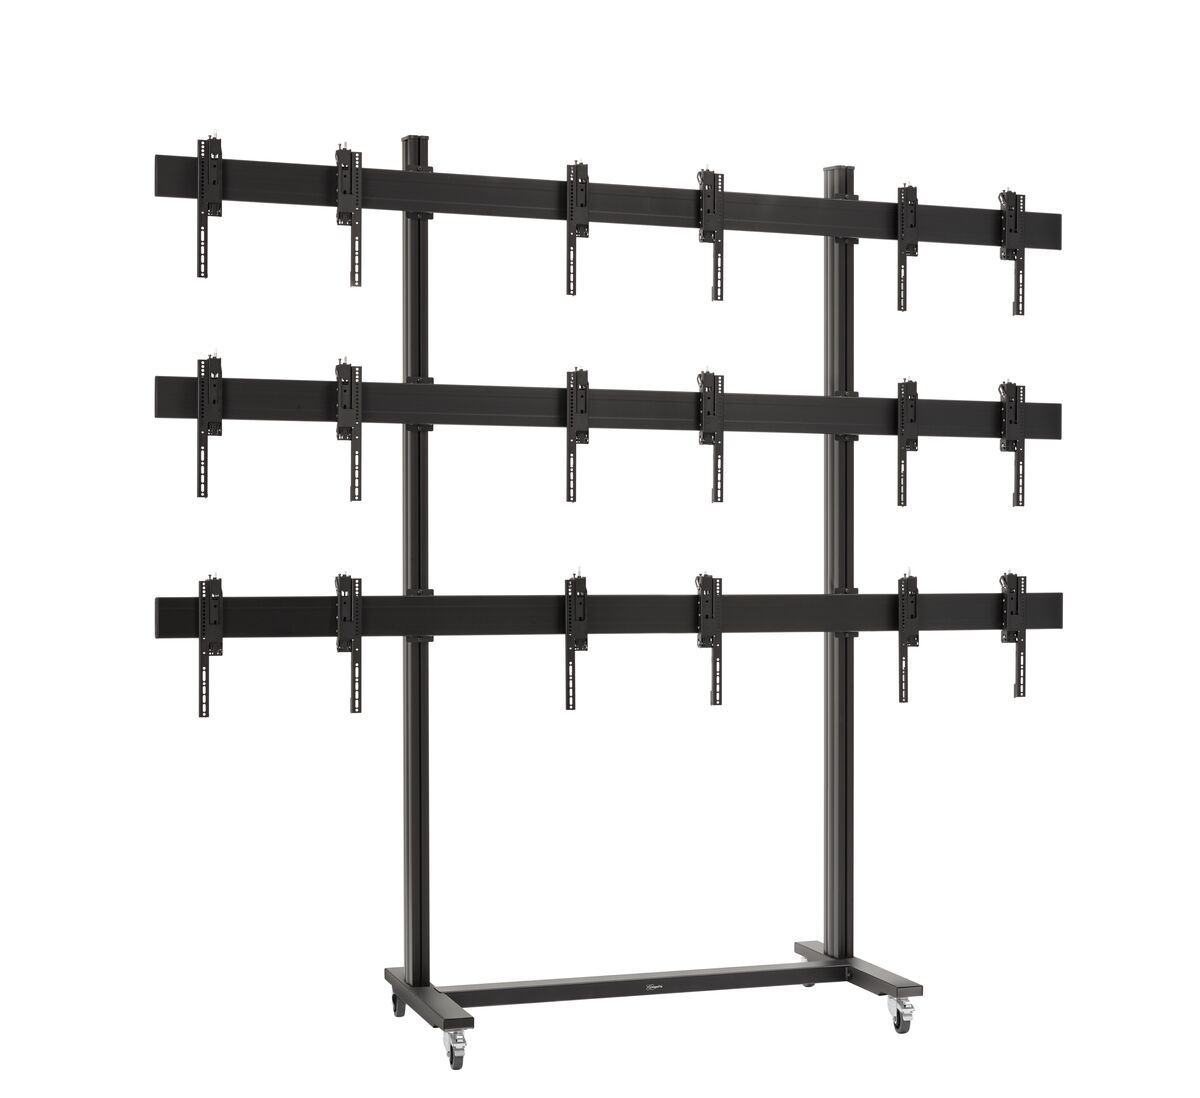 Vogel's TVW3355 Video wall trolley 3x3 - Product